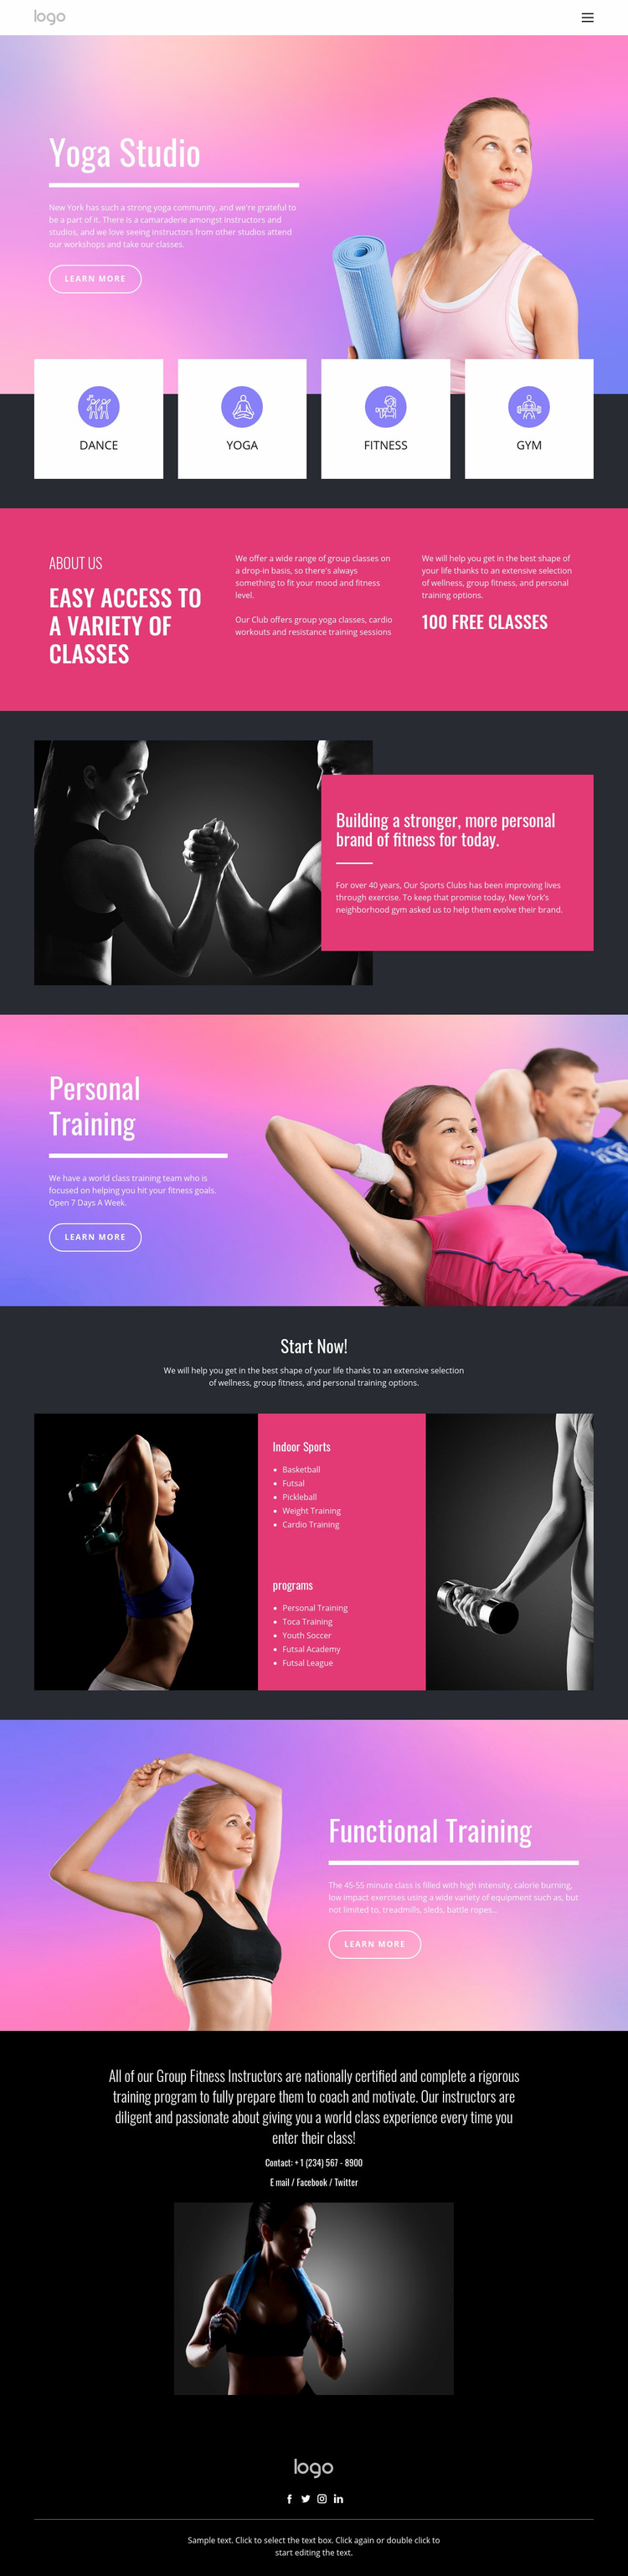 Wellness practice for self-inquiry Web Page Design